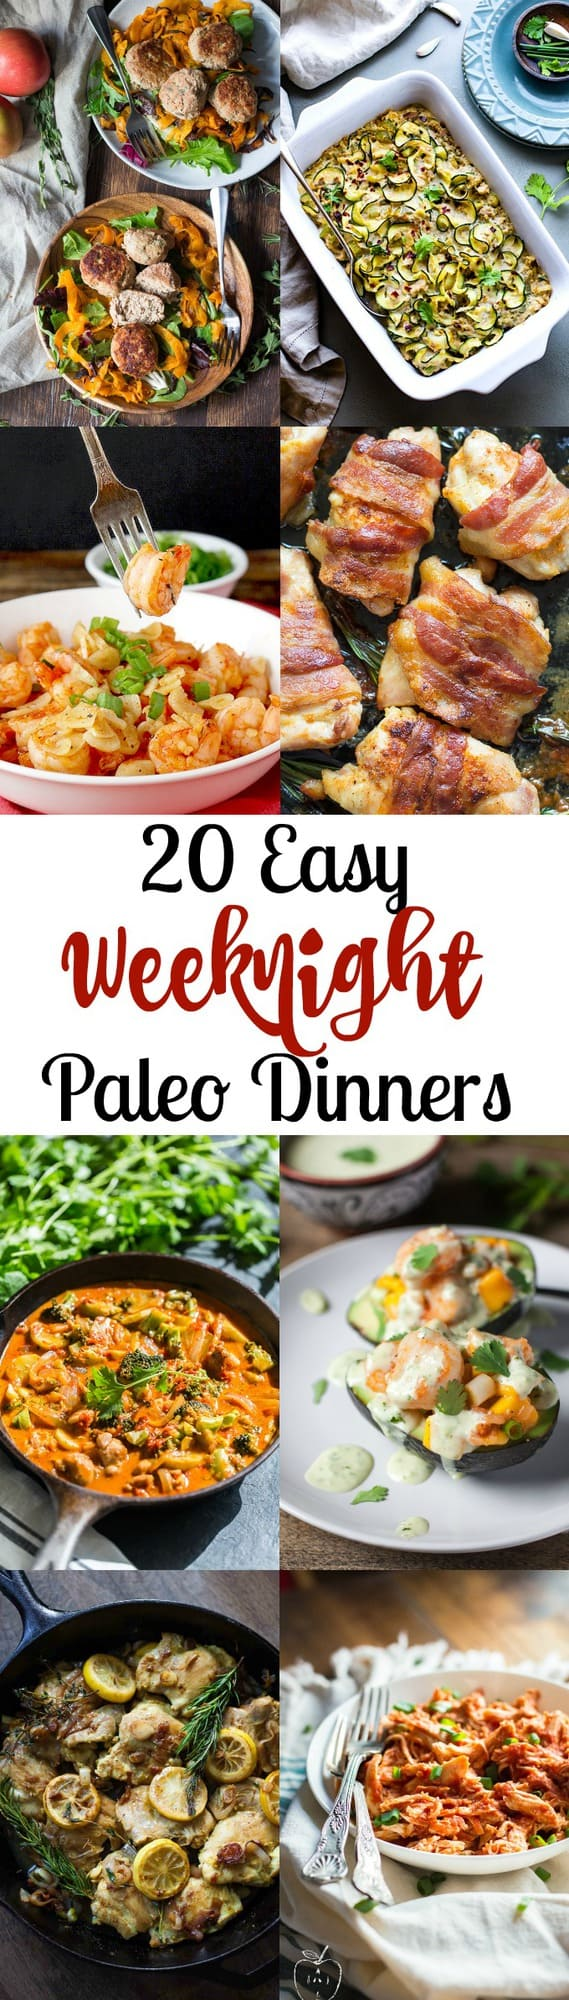 20 Easy Paleo Dinners for Weeknights